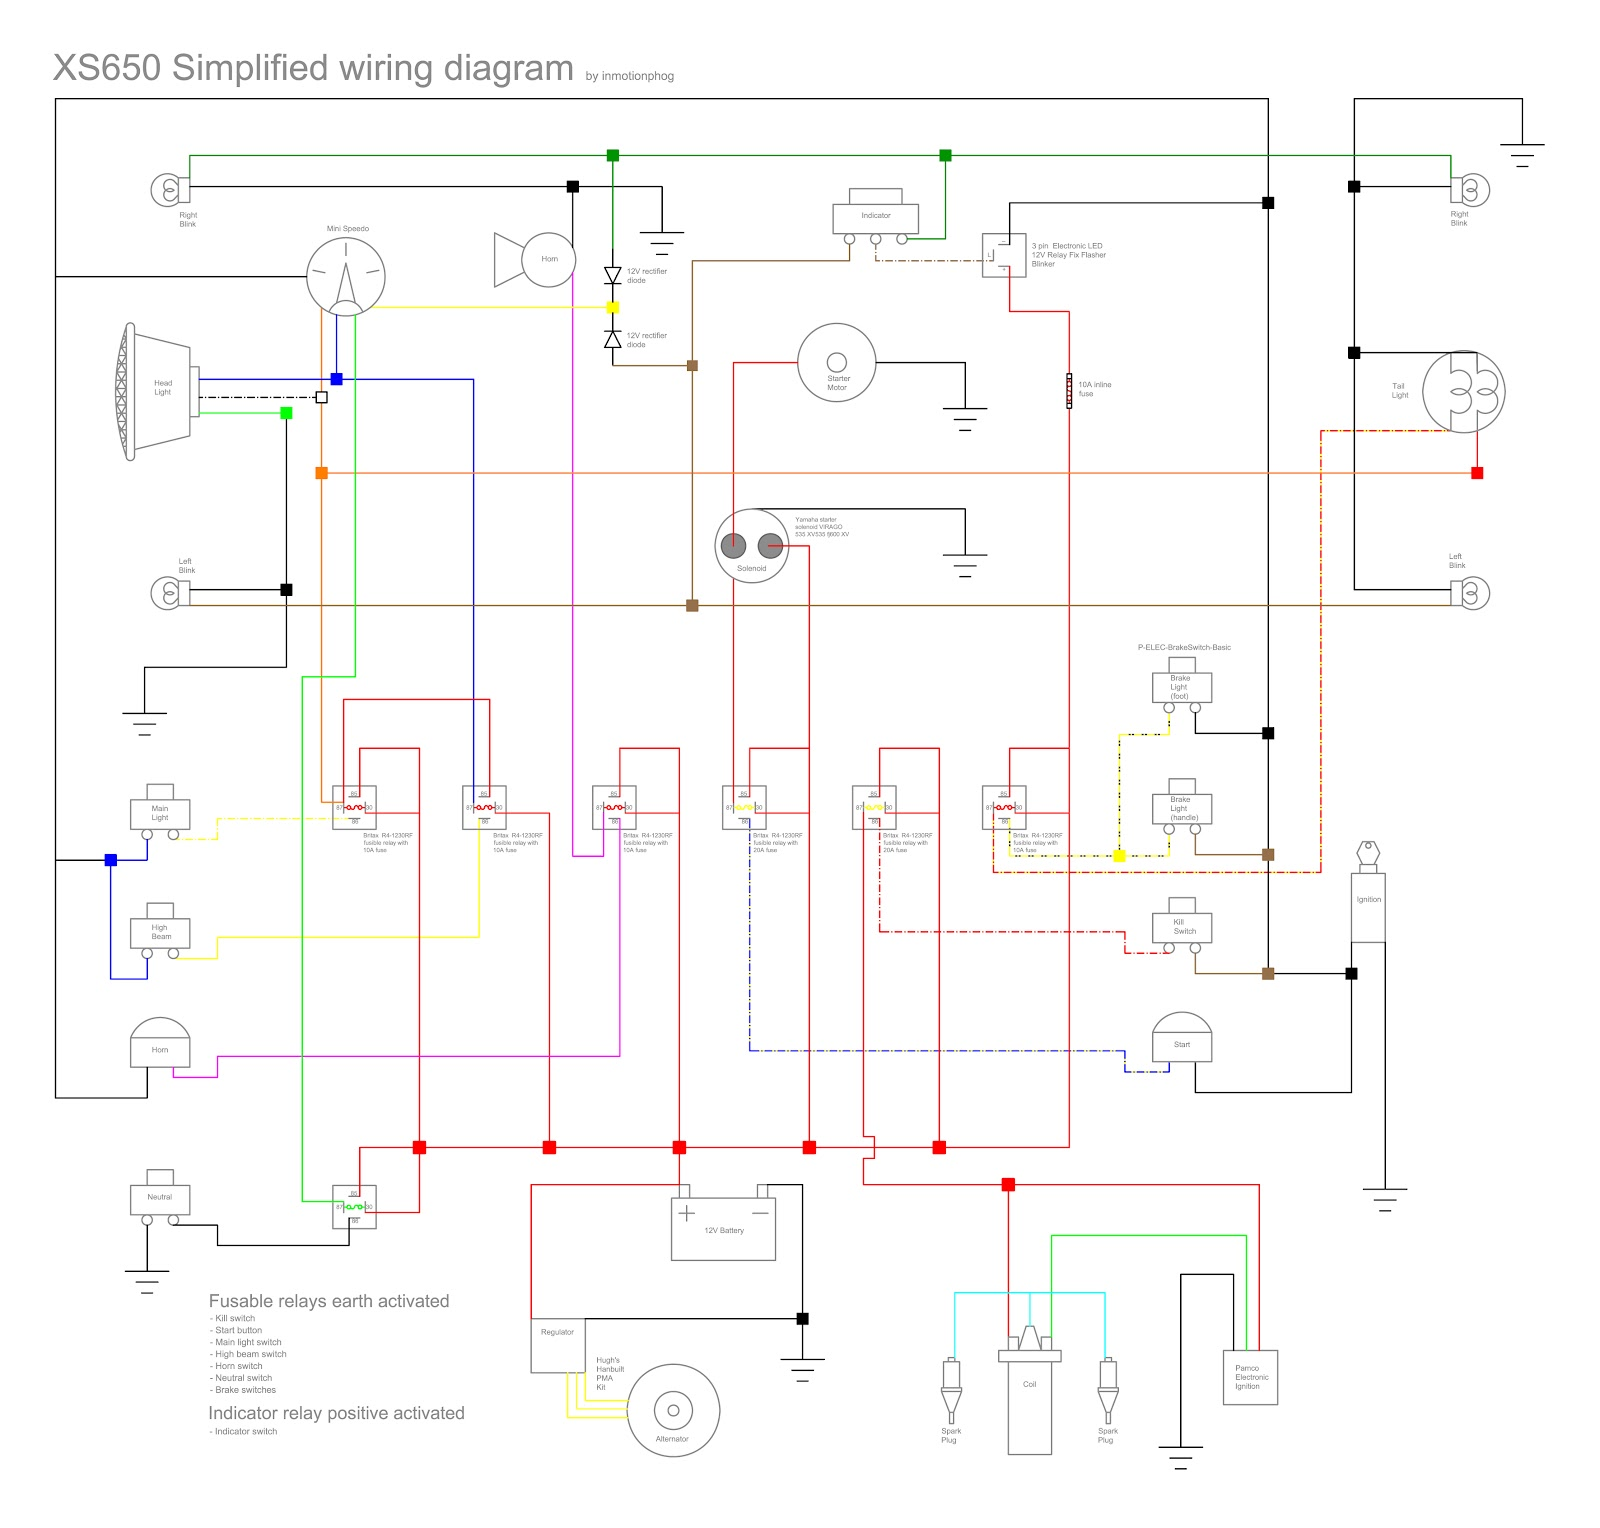 hight resolution of xs650 simplified wiring harness 31 wiring diagram images xj550 simplified wiring xs650 simple wiring harness